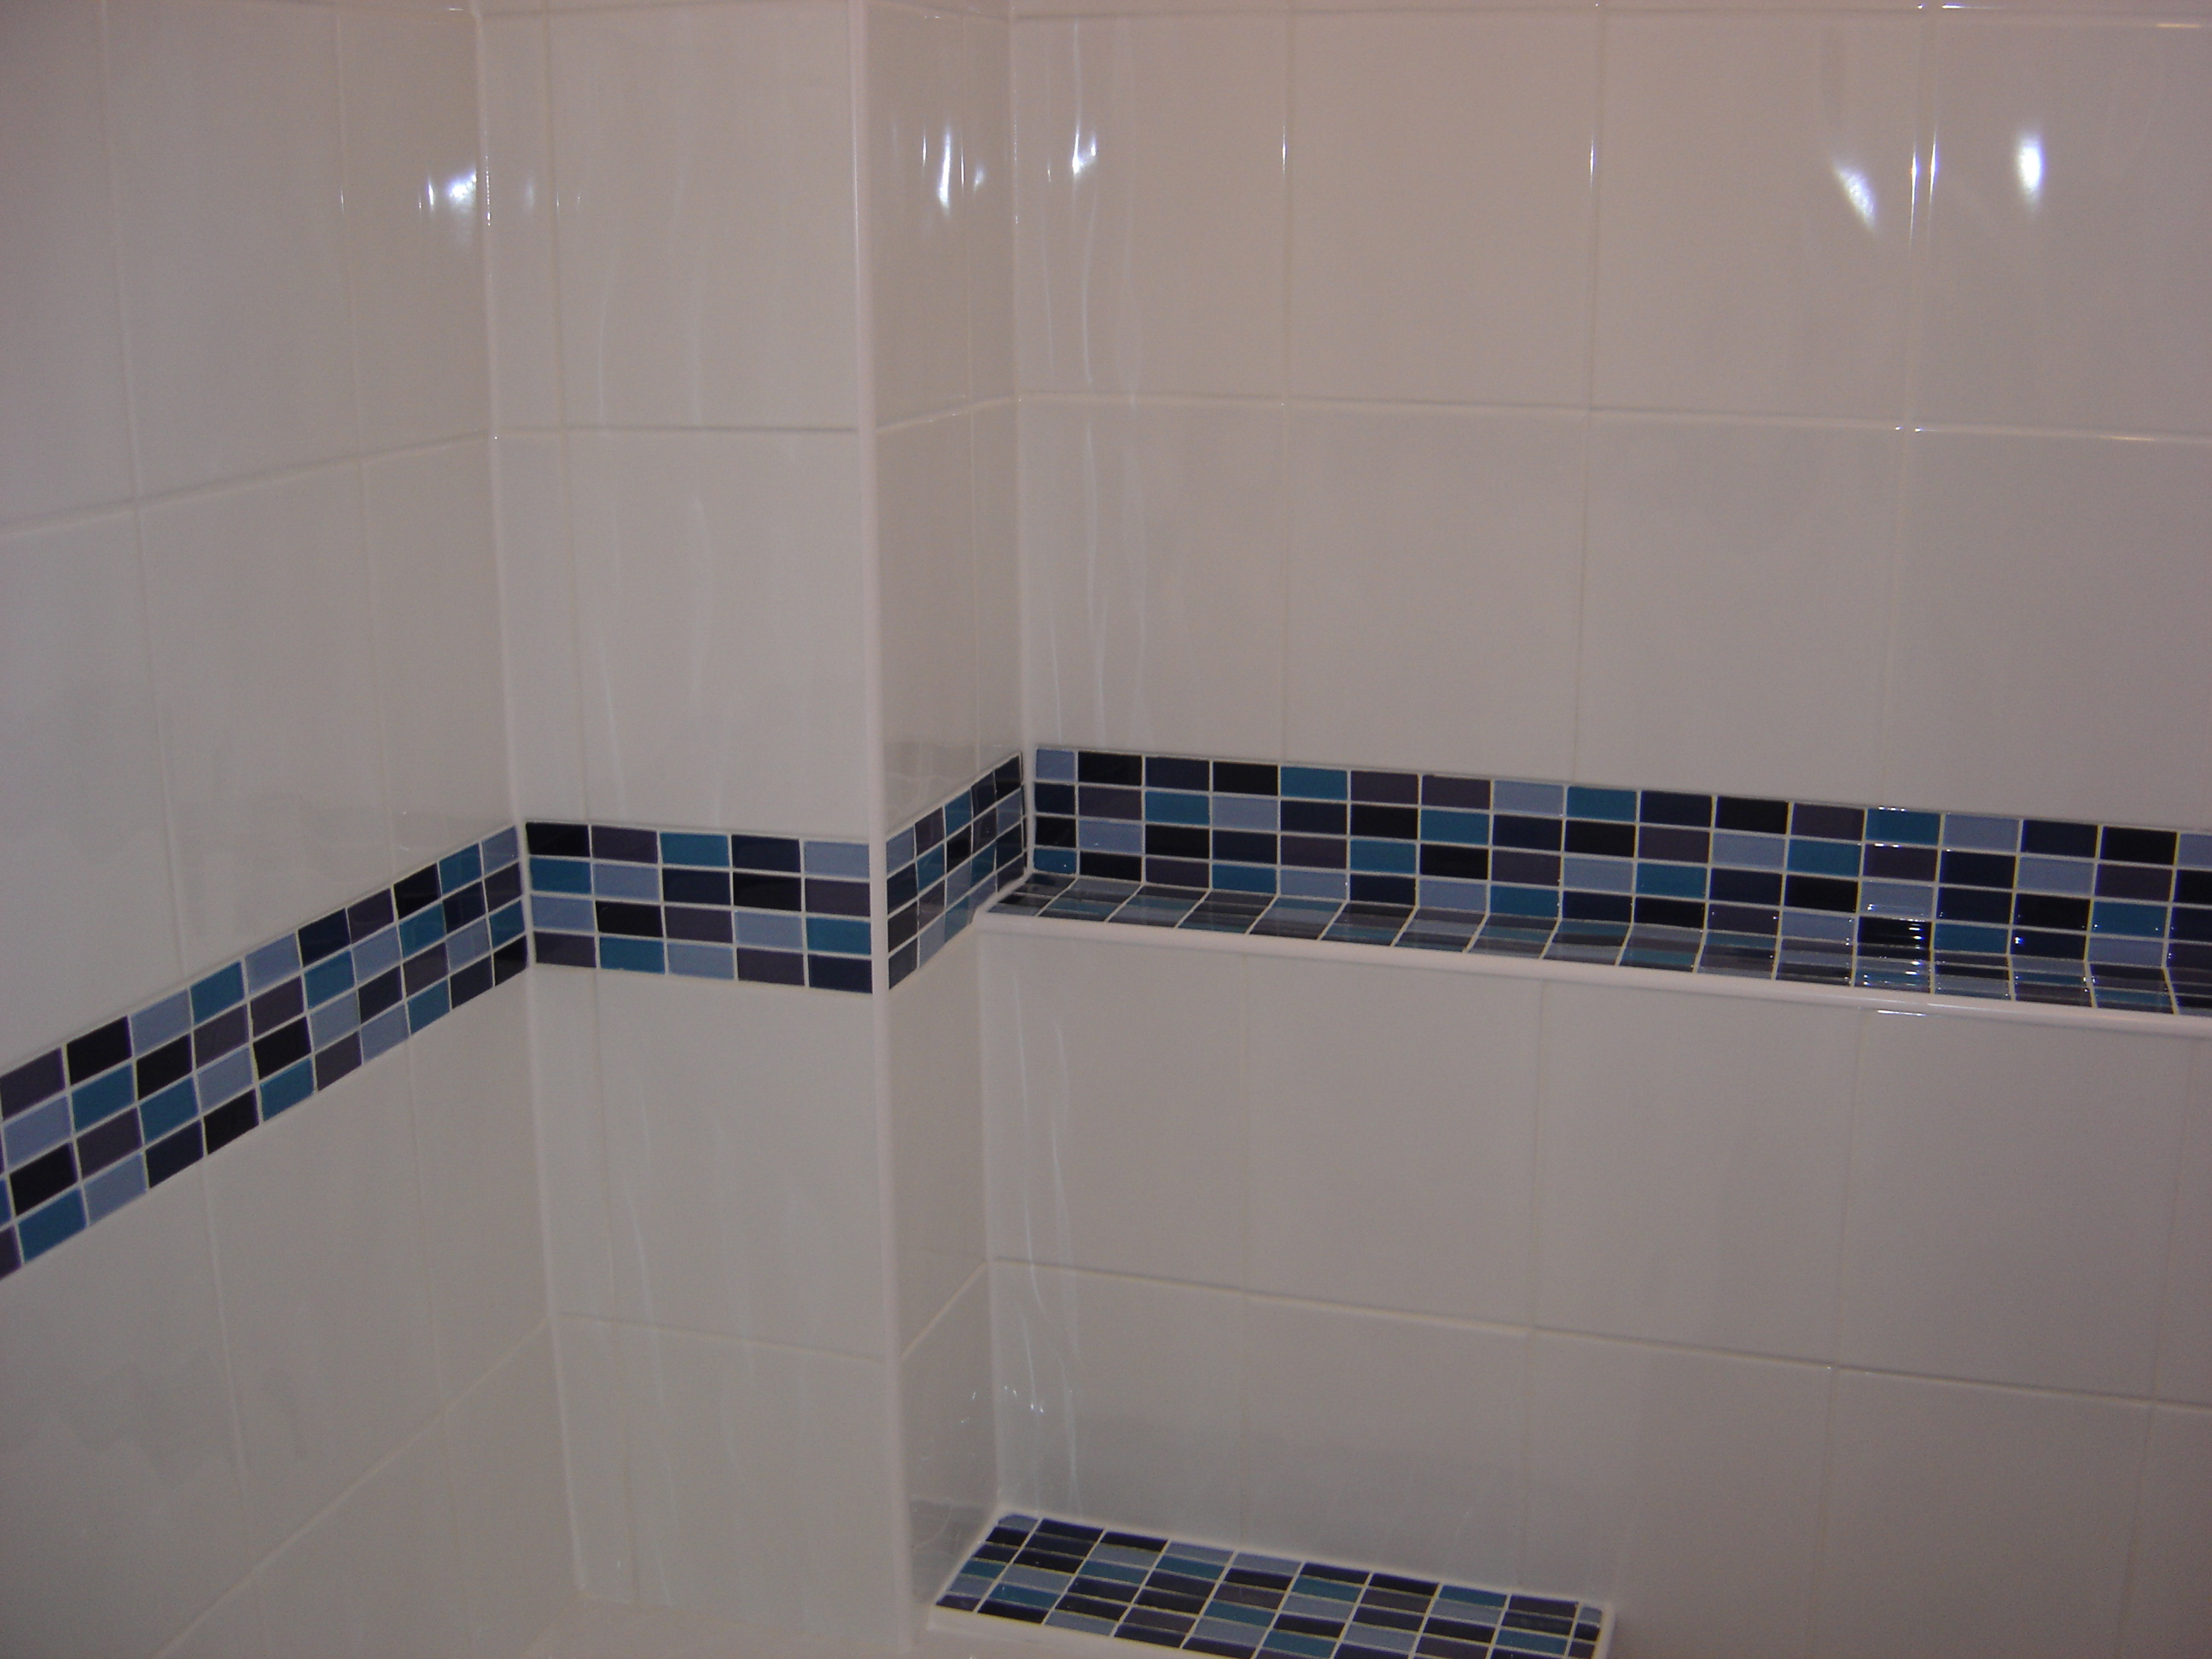 Bathroom Walls in Ceramic with Glass Mosaic Borders